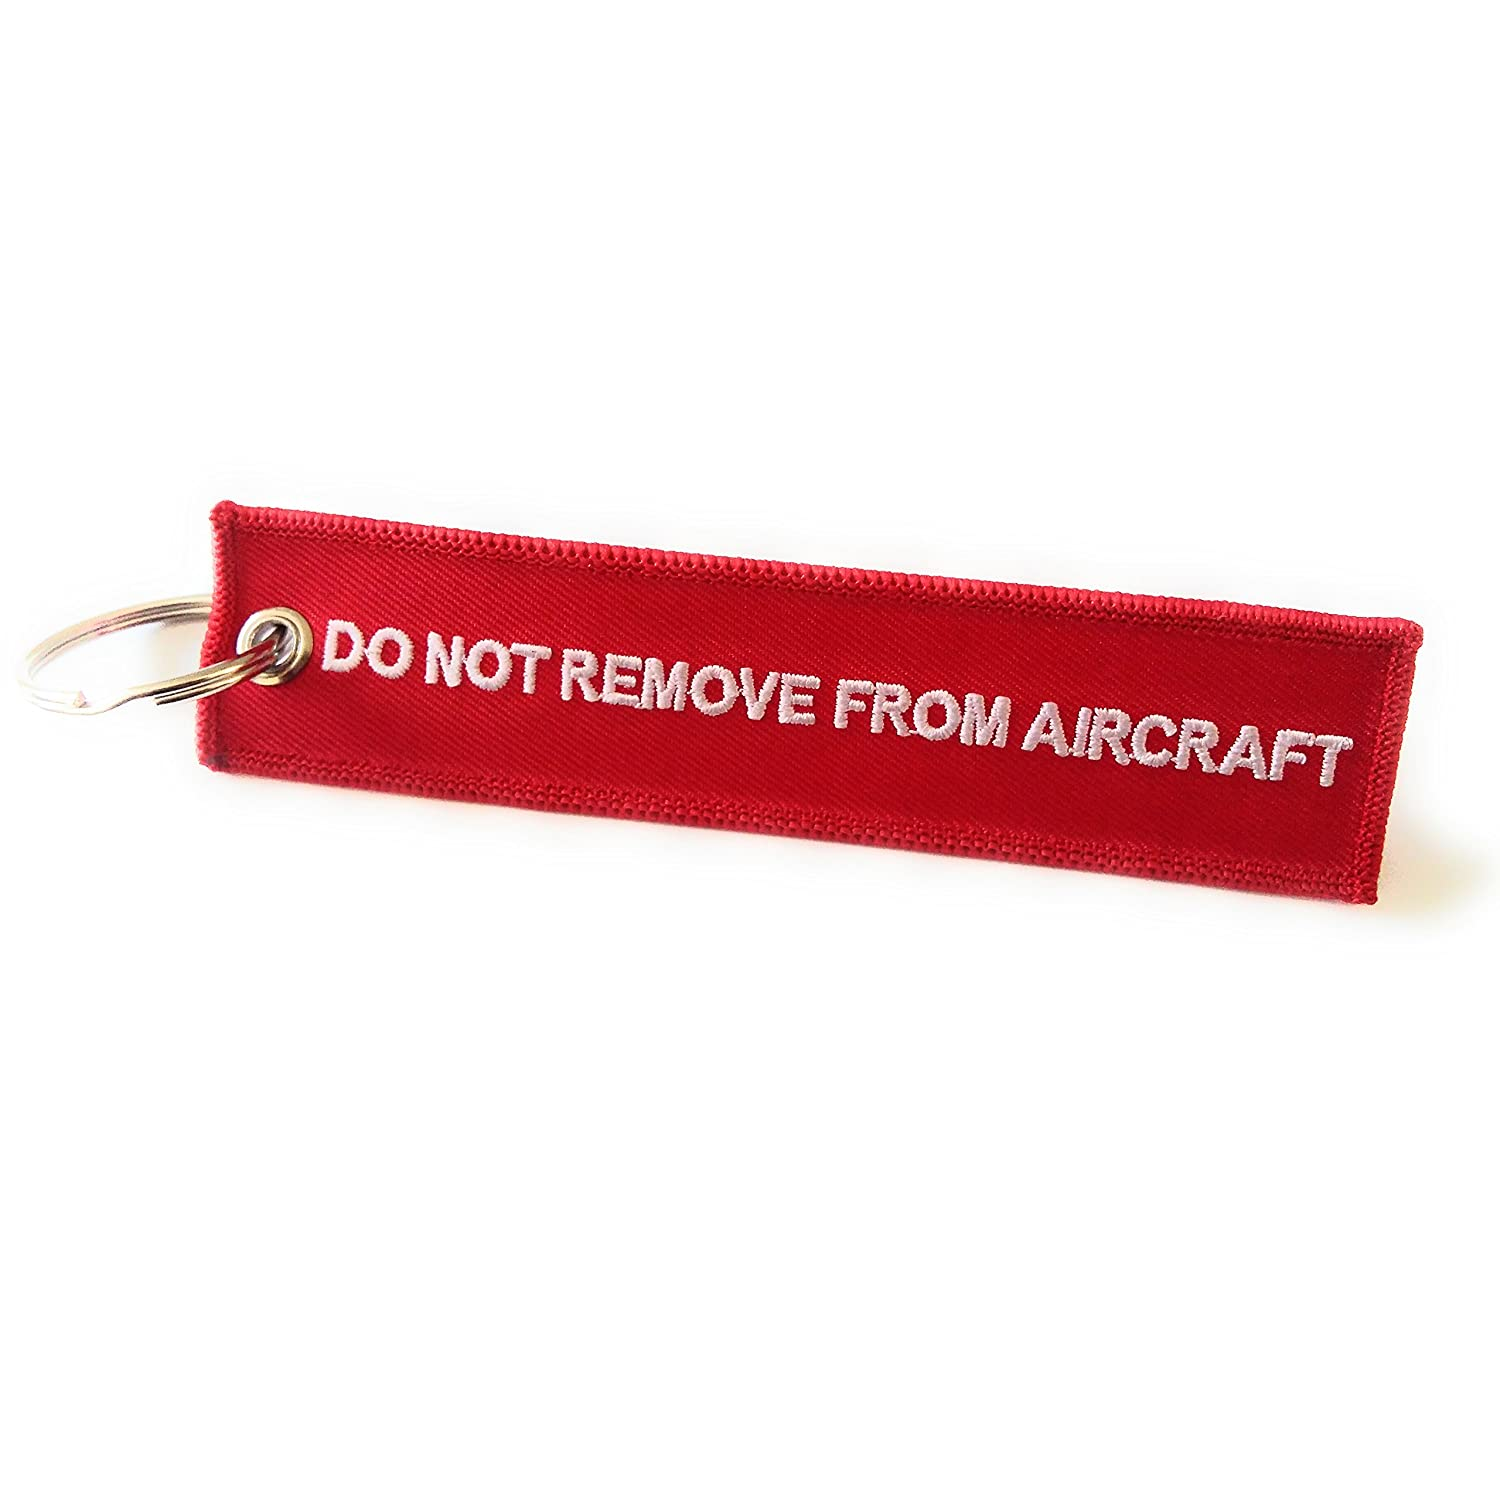 aviamart Do Not Remove From Aircraft Etiquette  rouge Cabin Crew